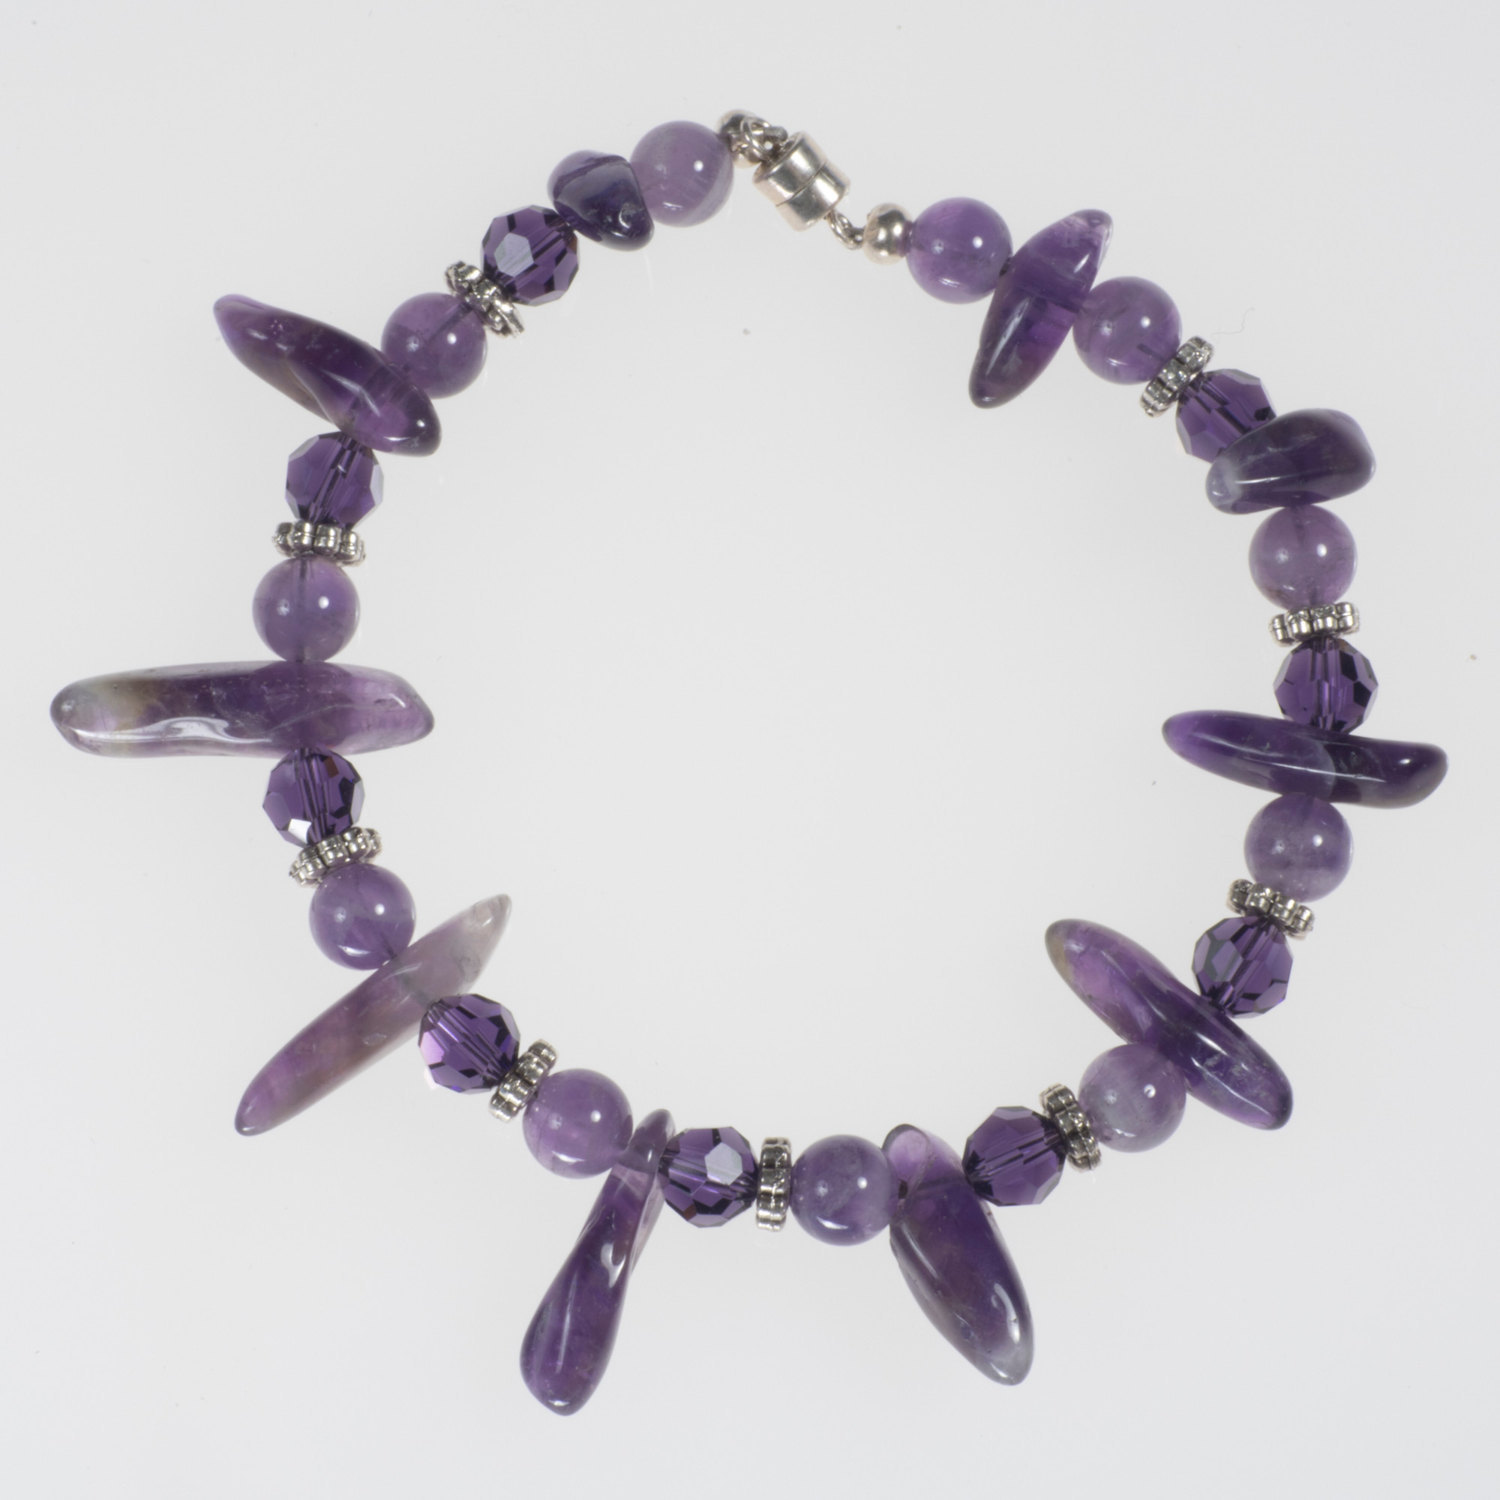 Amethyst Stone and Silver Bracelet - $18.00